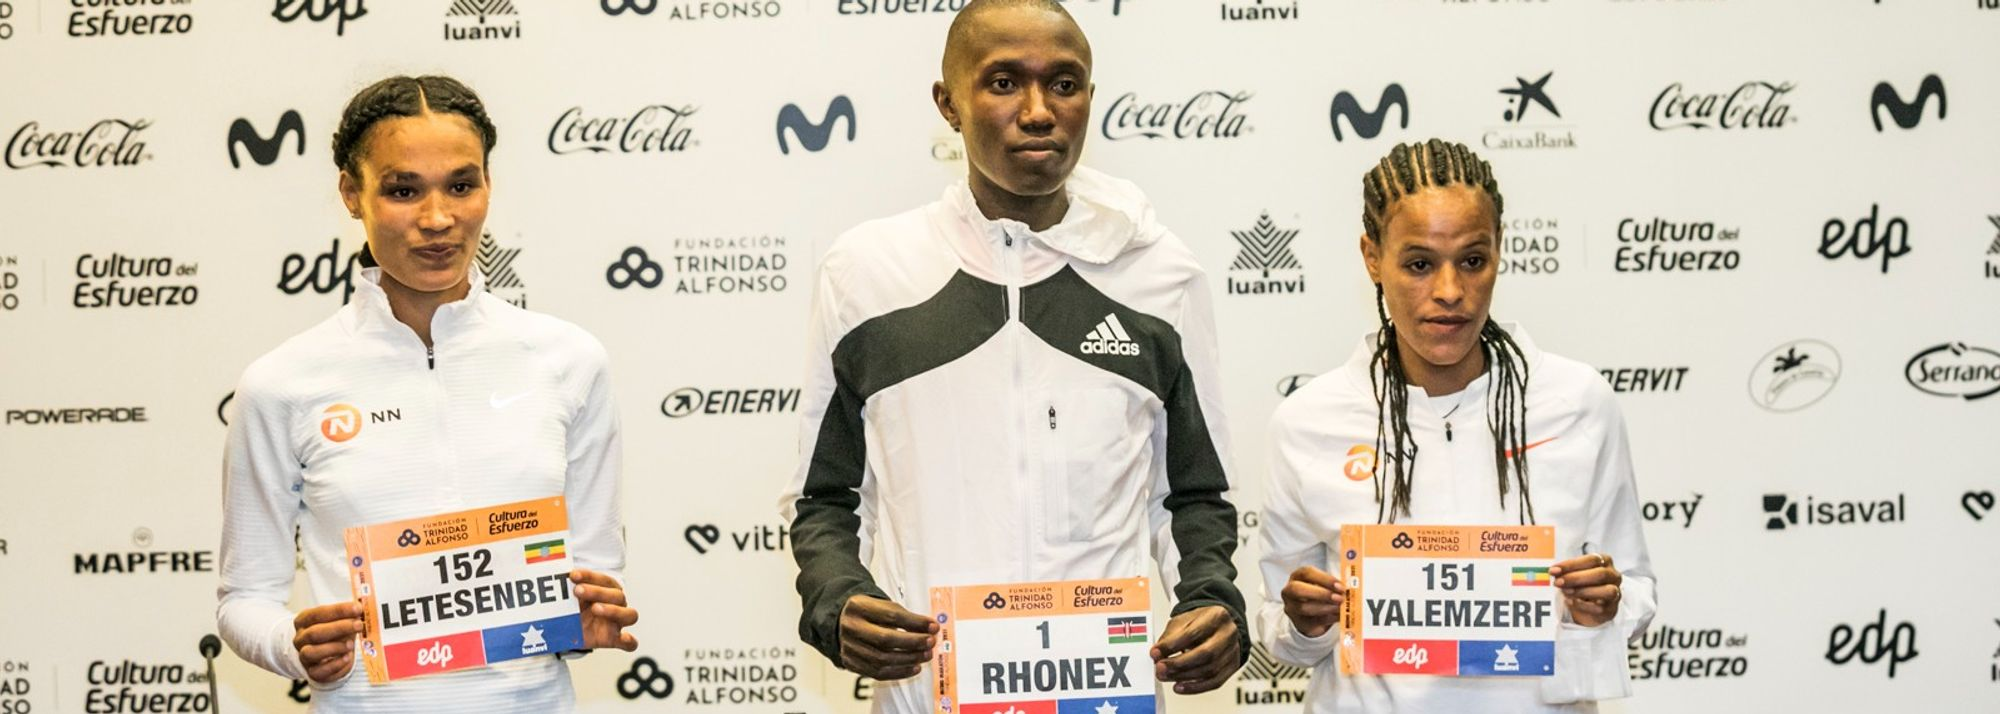 Organisers have assembled a star-studded line-up for the World Athletics Elite Label road race.